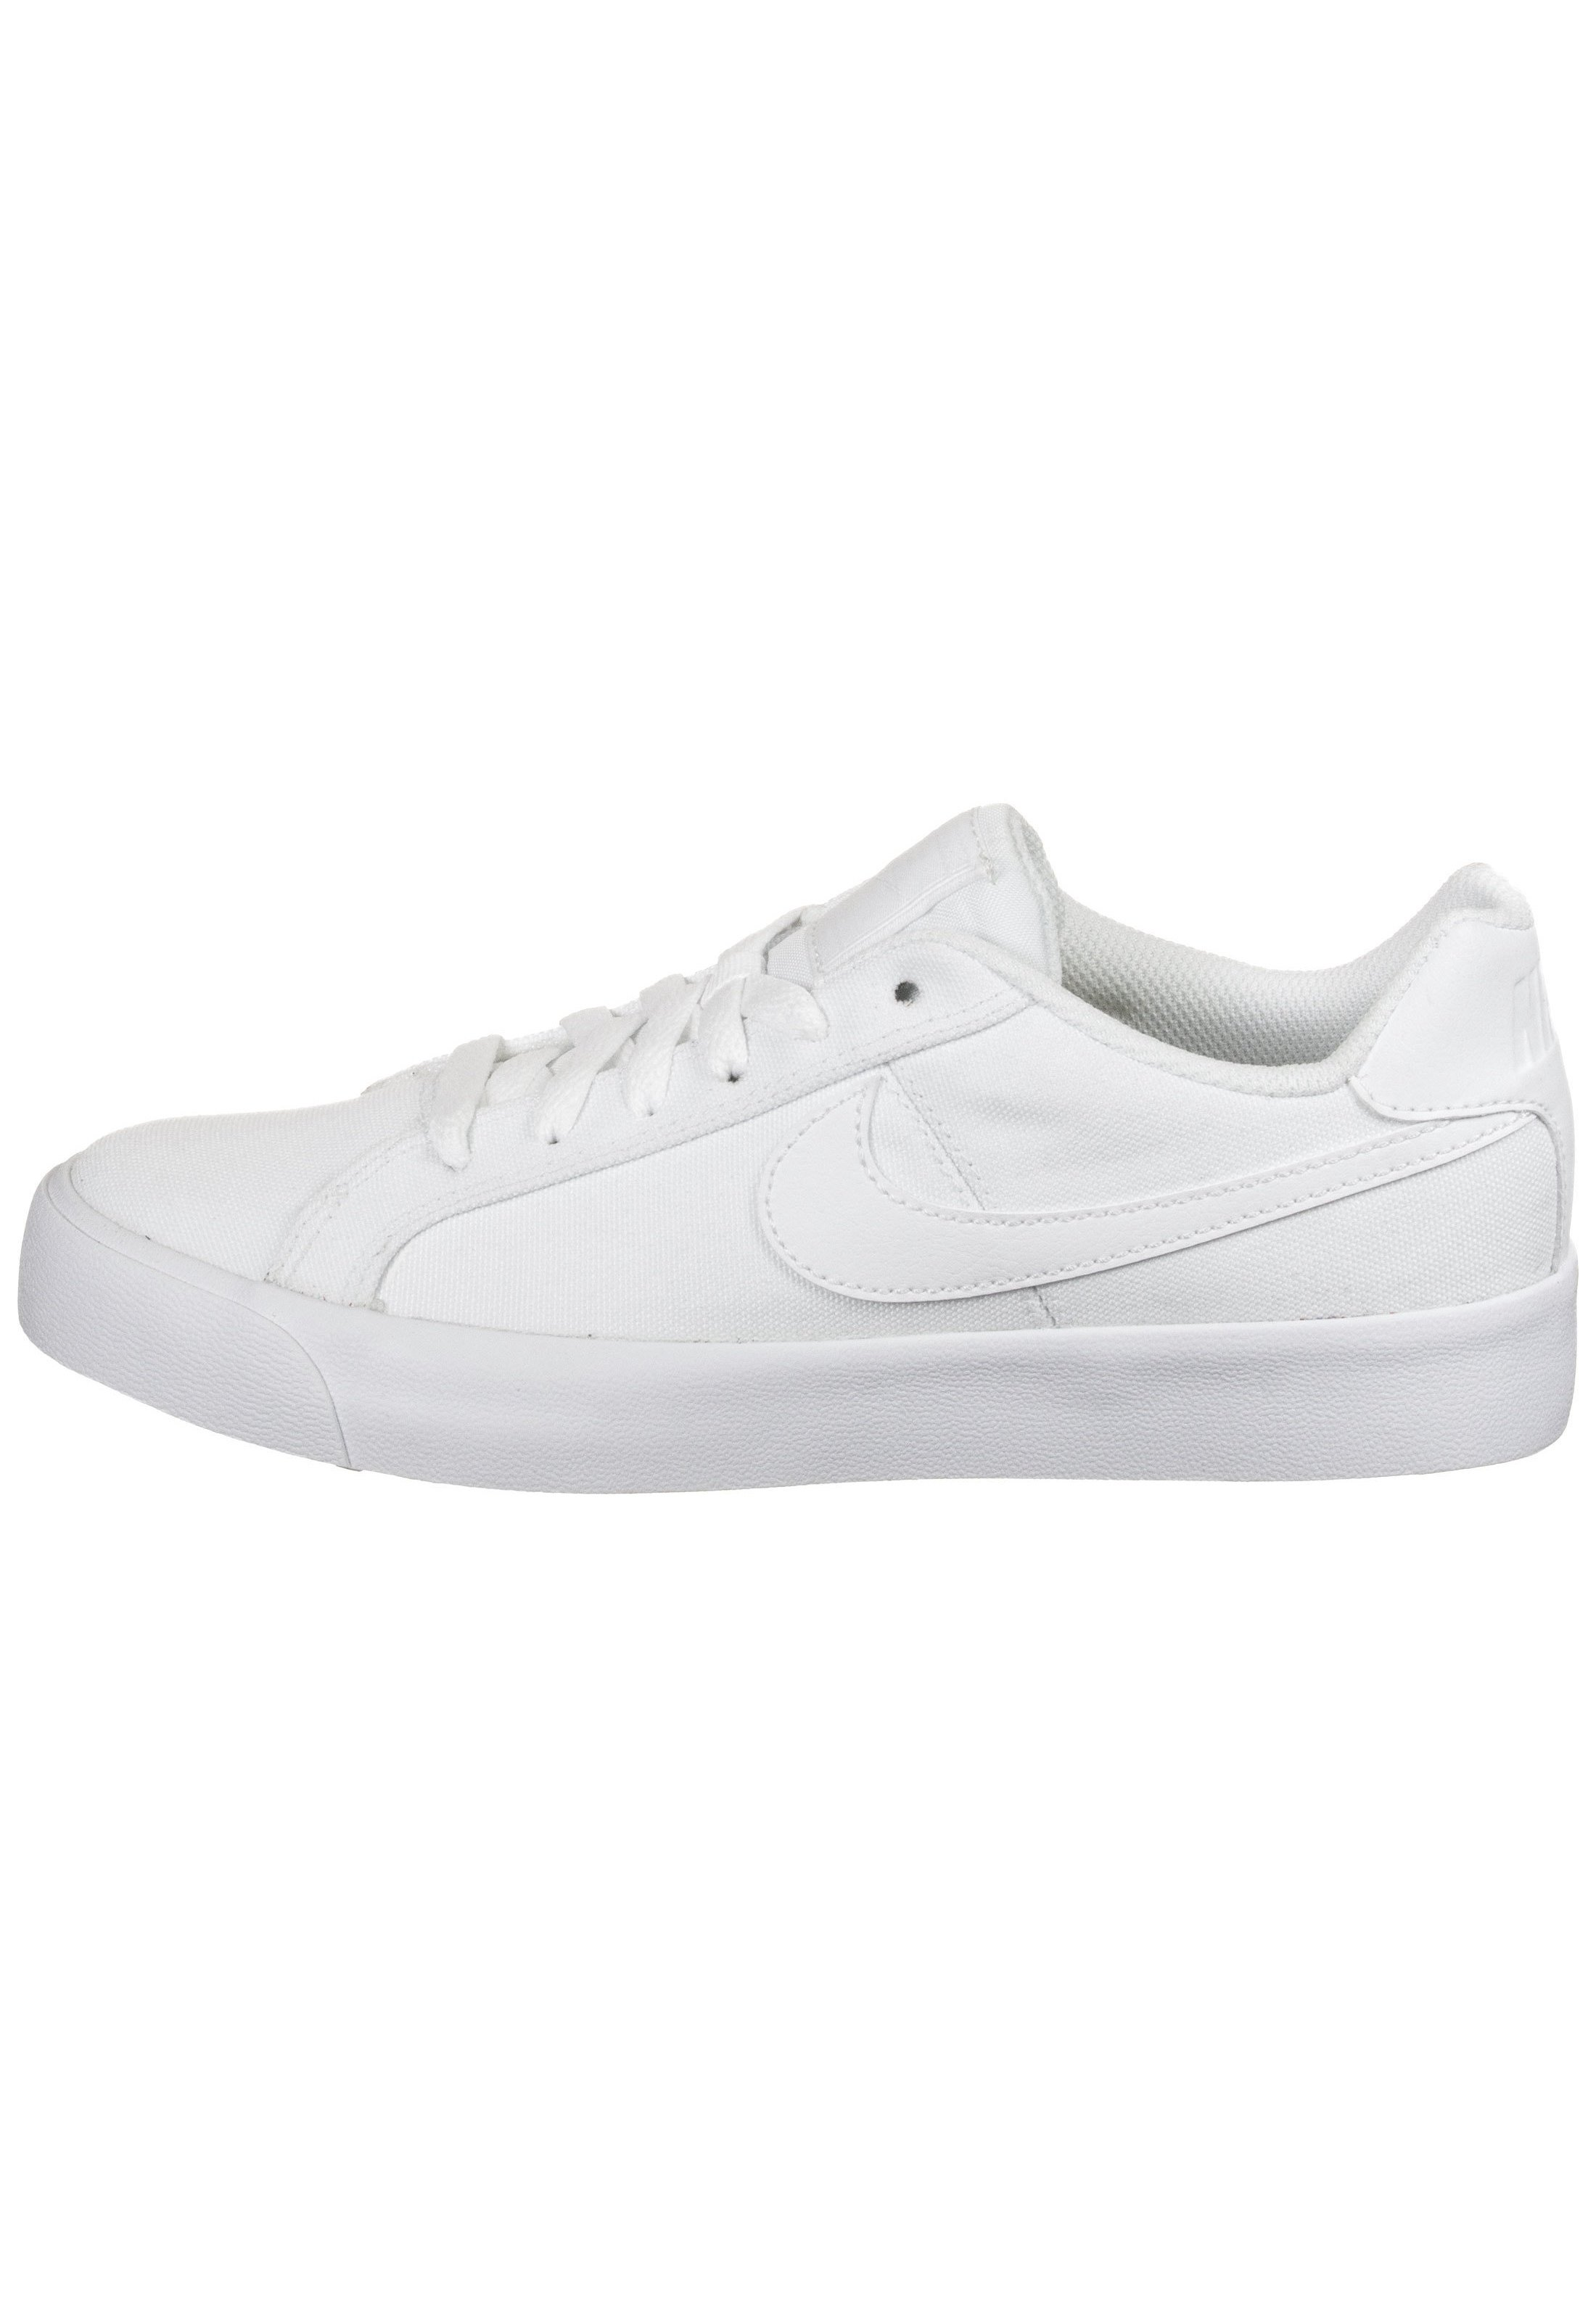 COURT ROYALE AC CANVAS SNEAKER DAMEN Sneakers laag white white